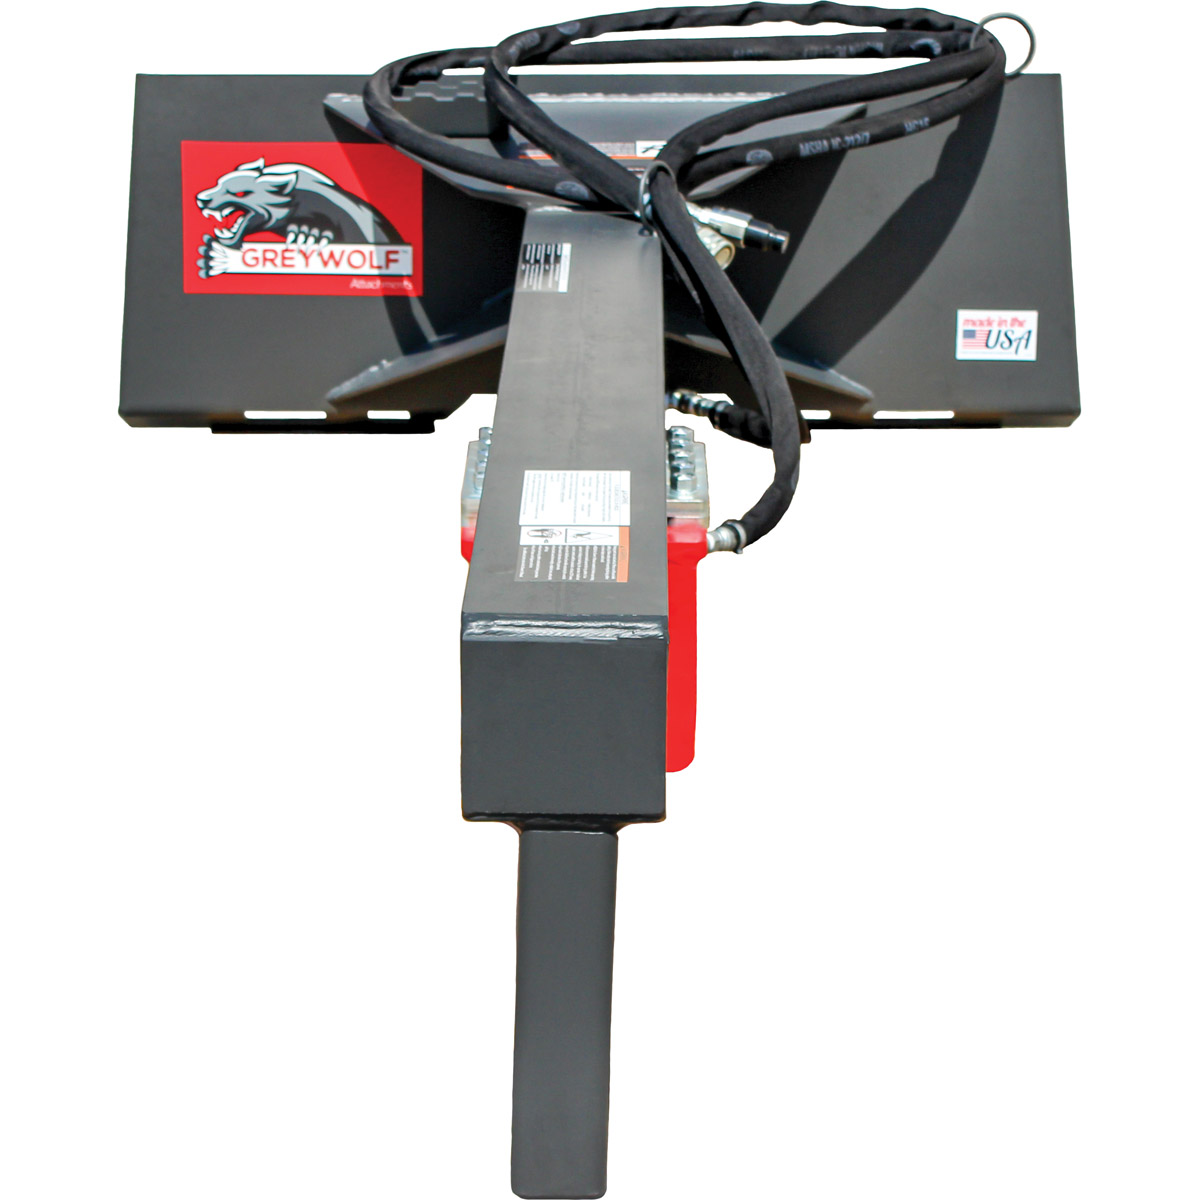 GreyWolf 24 Ton Log Splitter Skid Steer Attachment